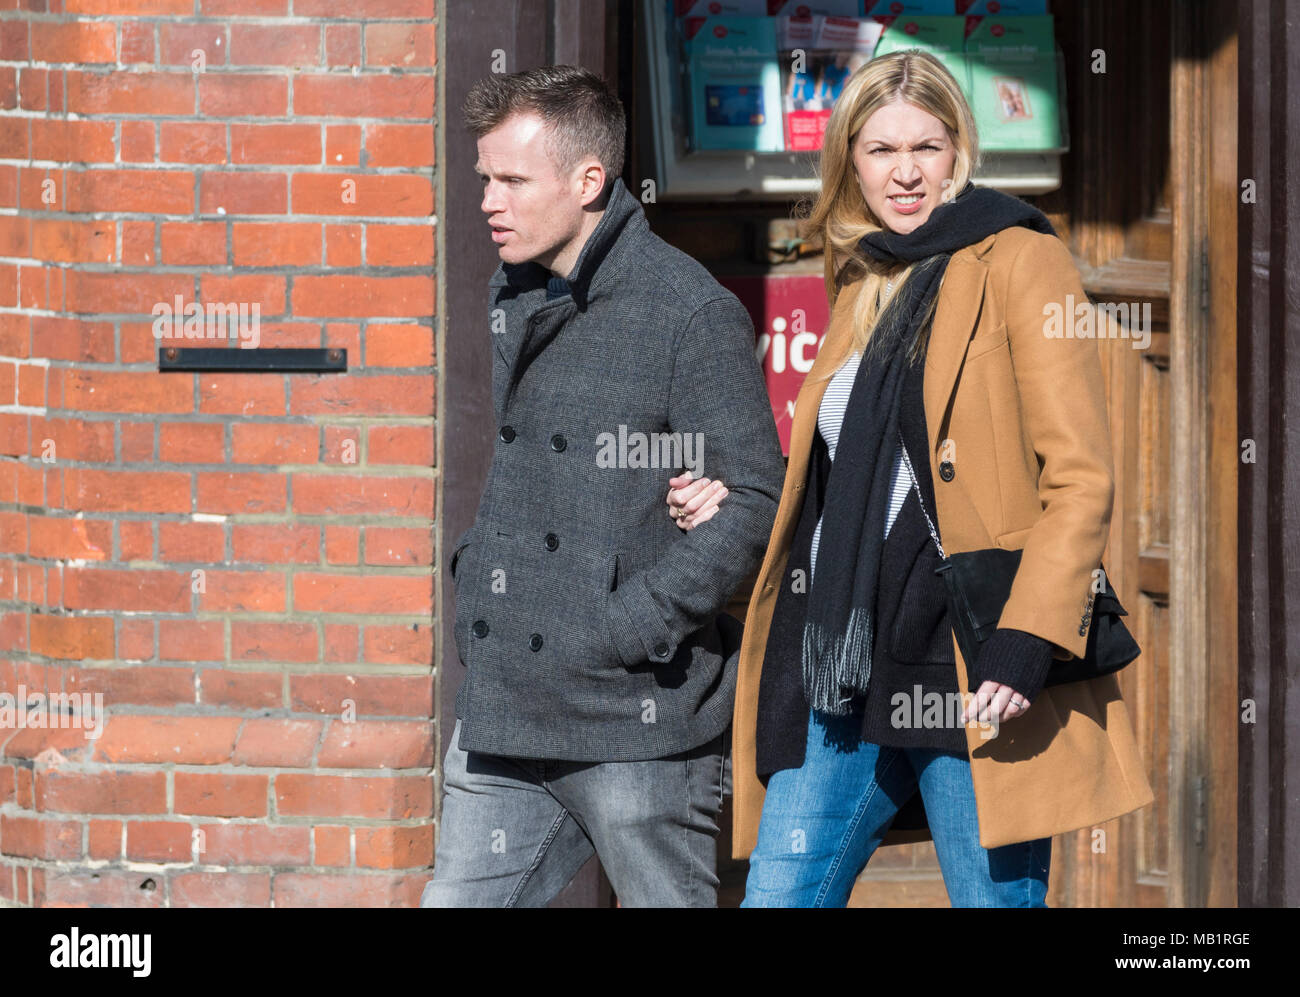 Young couple walking in town with linked arms in the UK. - Stock Image